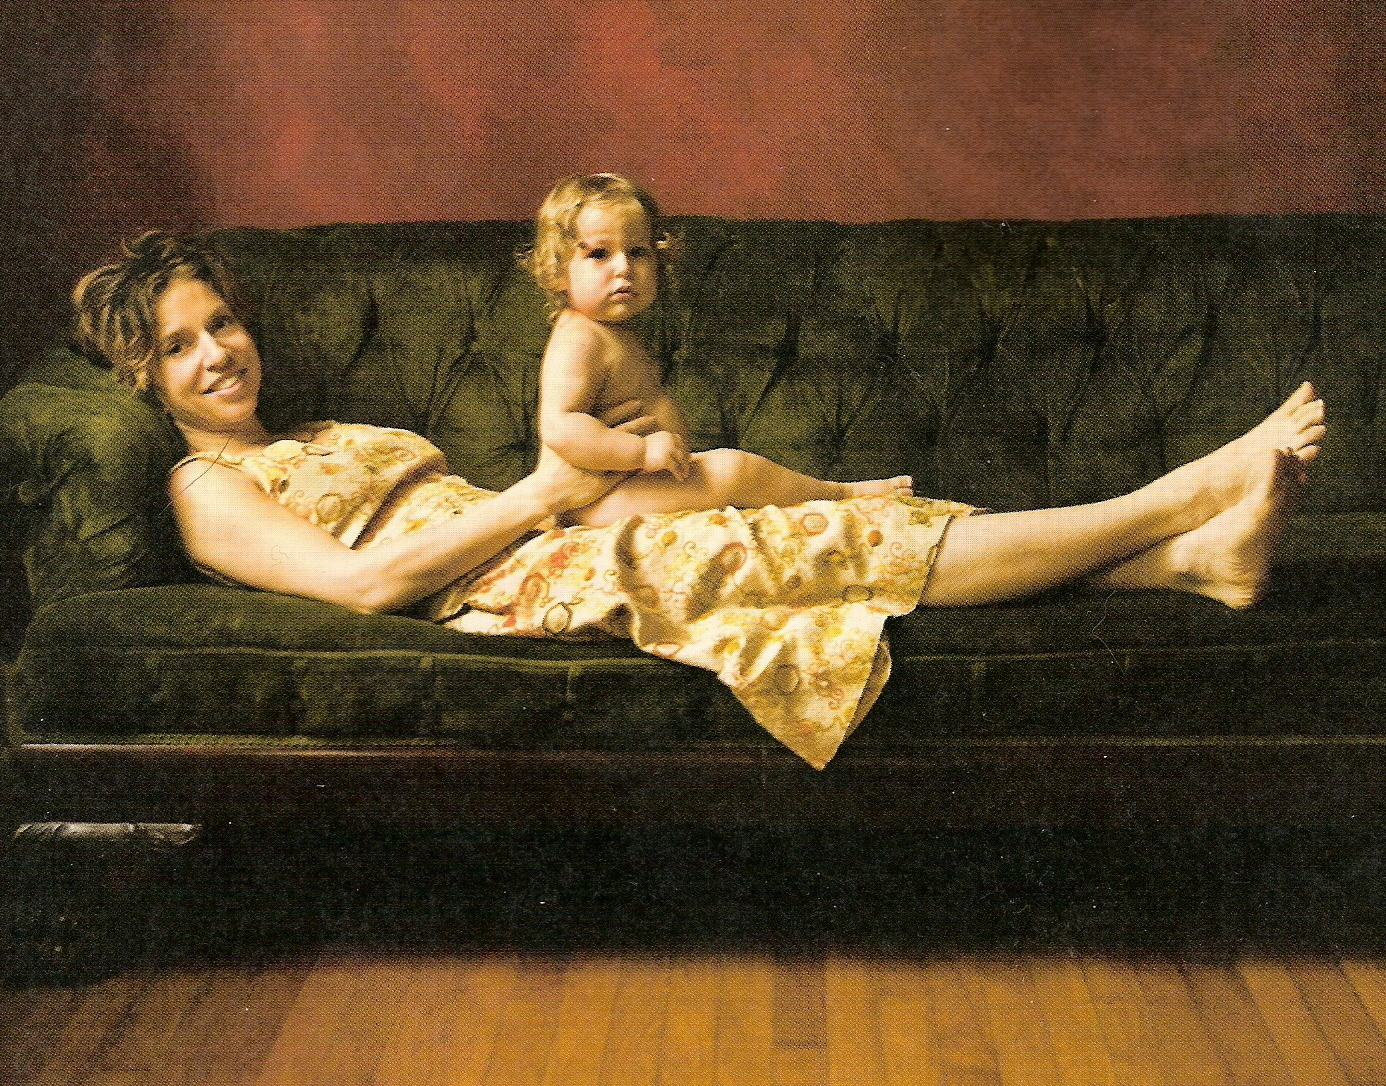 http://2.bp.blogspot.com/-VpcQ2iXih6w/TlayLYFVjQI/AAAAAAAADes/aPvCSxaPwQI/s1600/Ani-in-Mothering-Magazine-ani-difranco-1230212_1386_1086.jpg